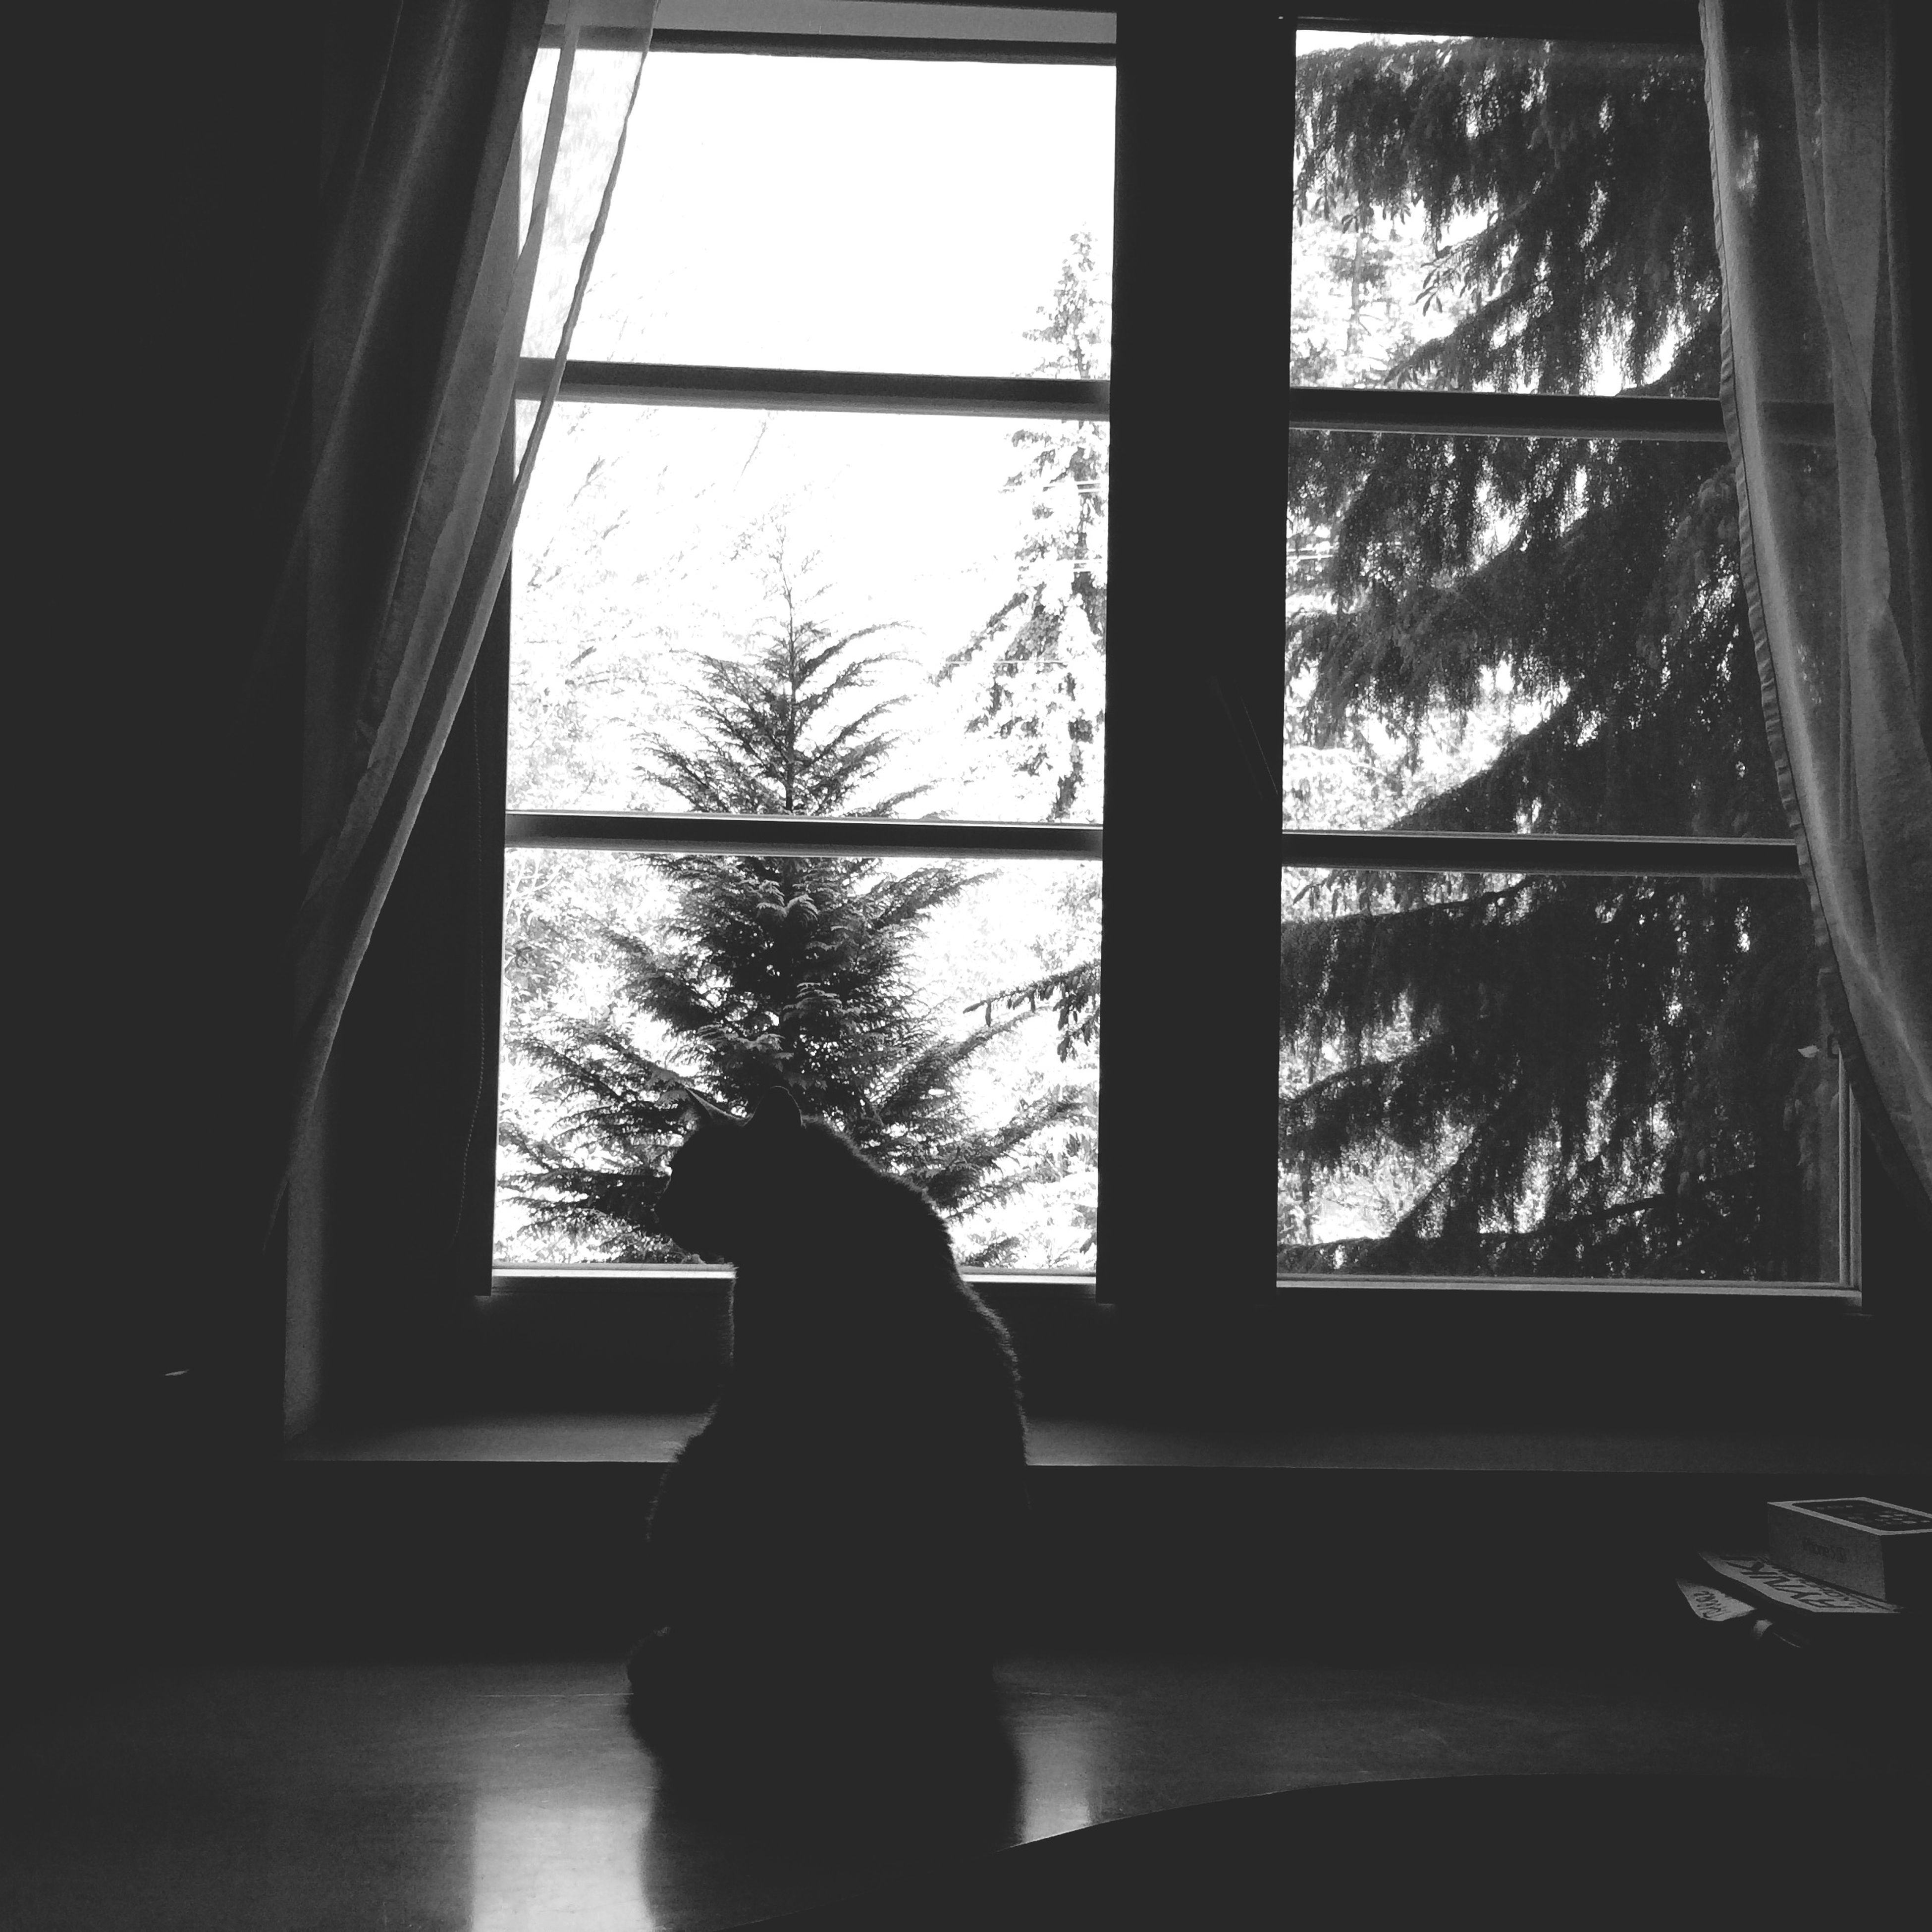 window, indoors, transparent, glass - material, looking through window, silhouette, tree, home interior, window sill, dark, glass, curtain, day, sunlight, reflection, sitting, house, open